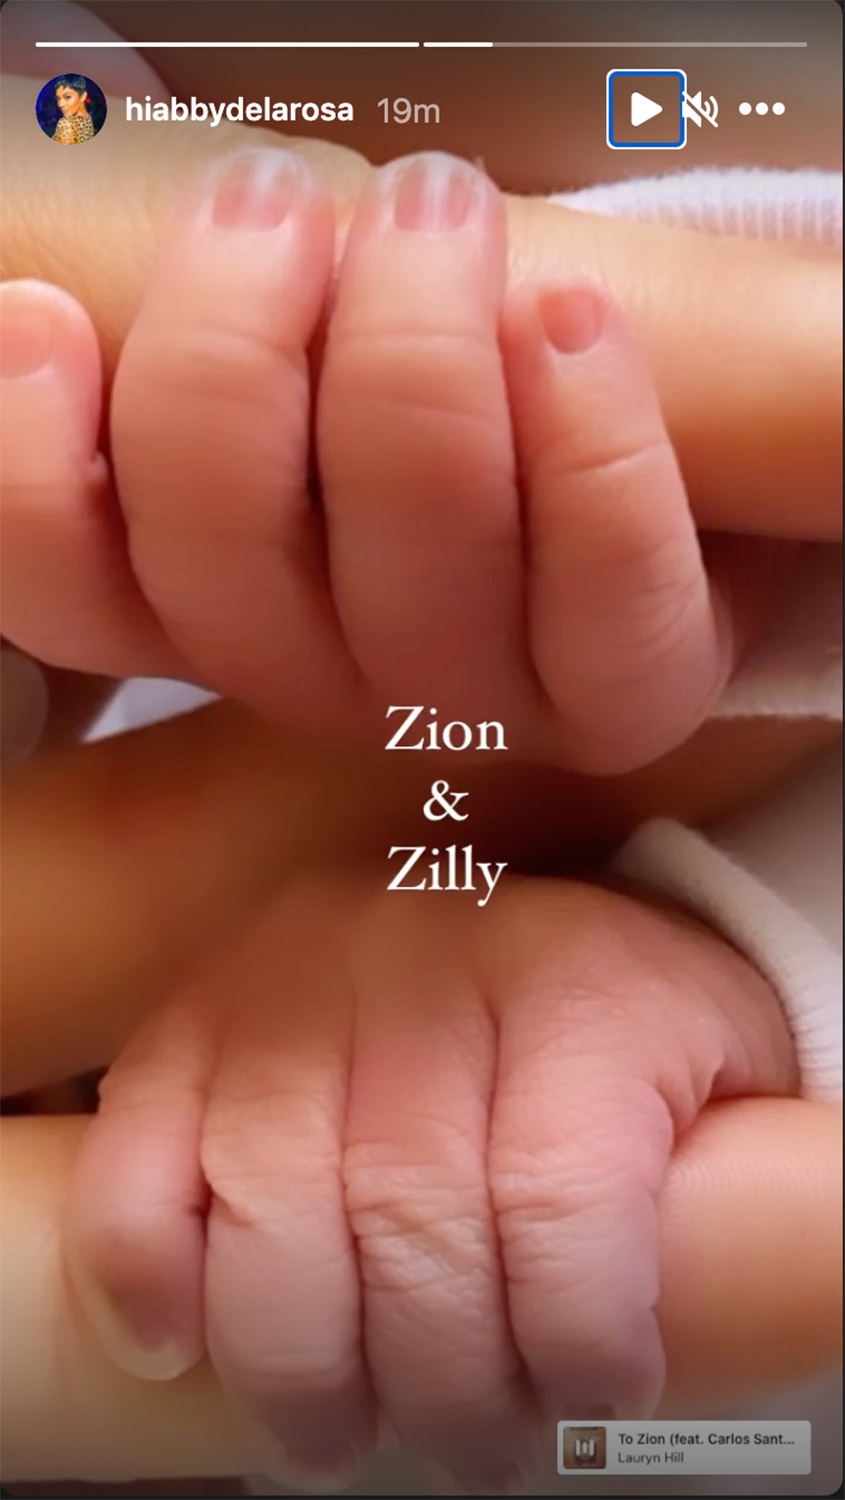 Nick Cannon and Abby De La Rosa welcome twin Boys, Zion and Zillion